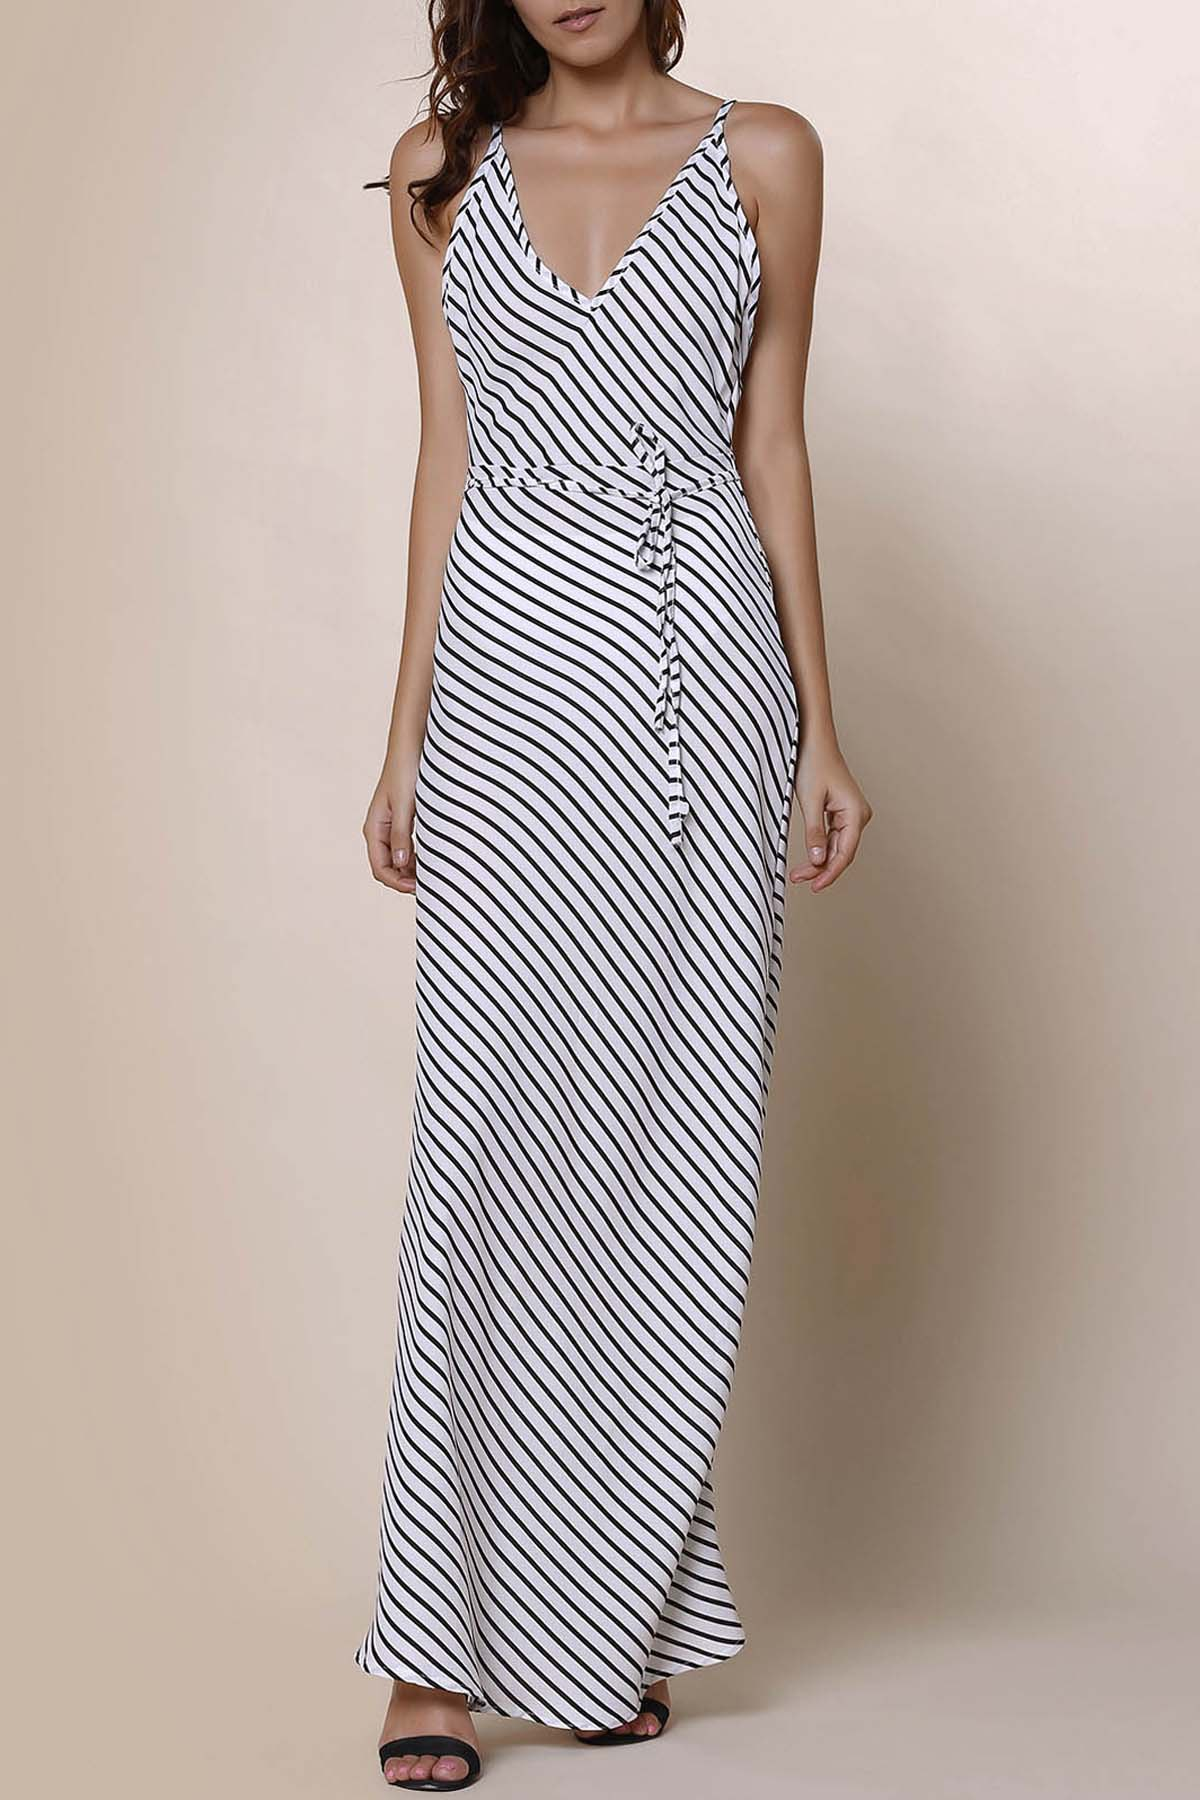 Stylish Spaghetti Strap Striped Backless Women's Maxi Dress - STRIPE XL